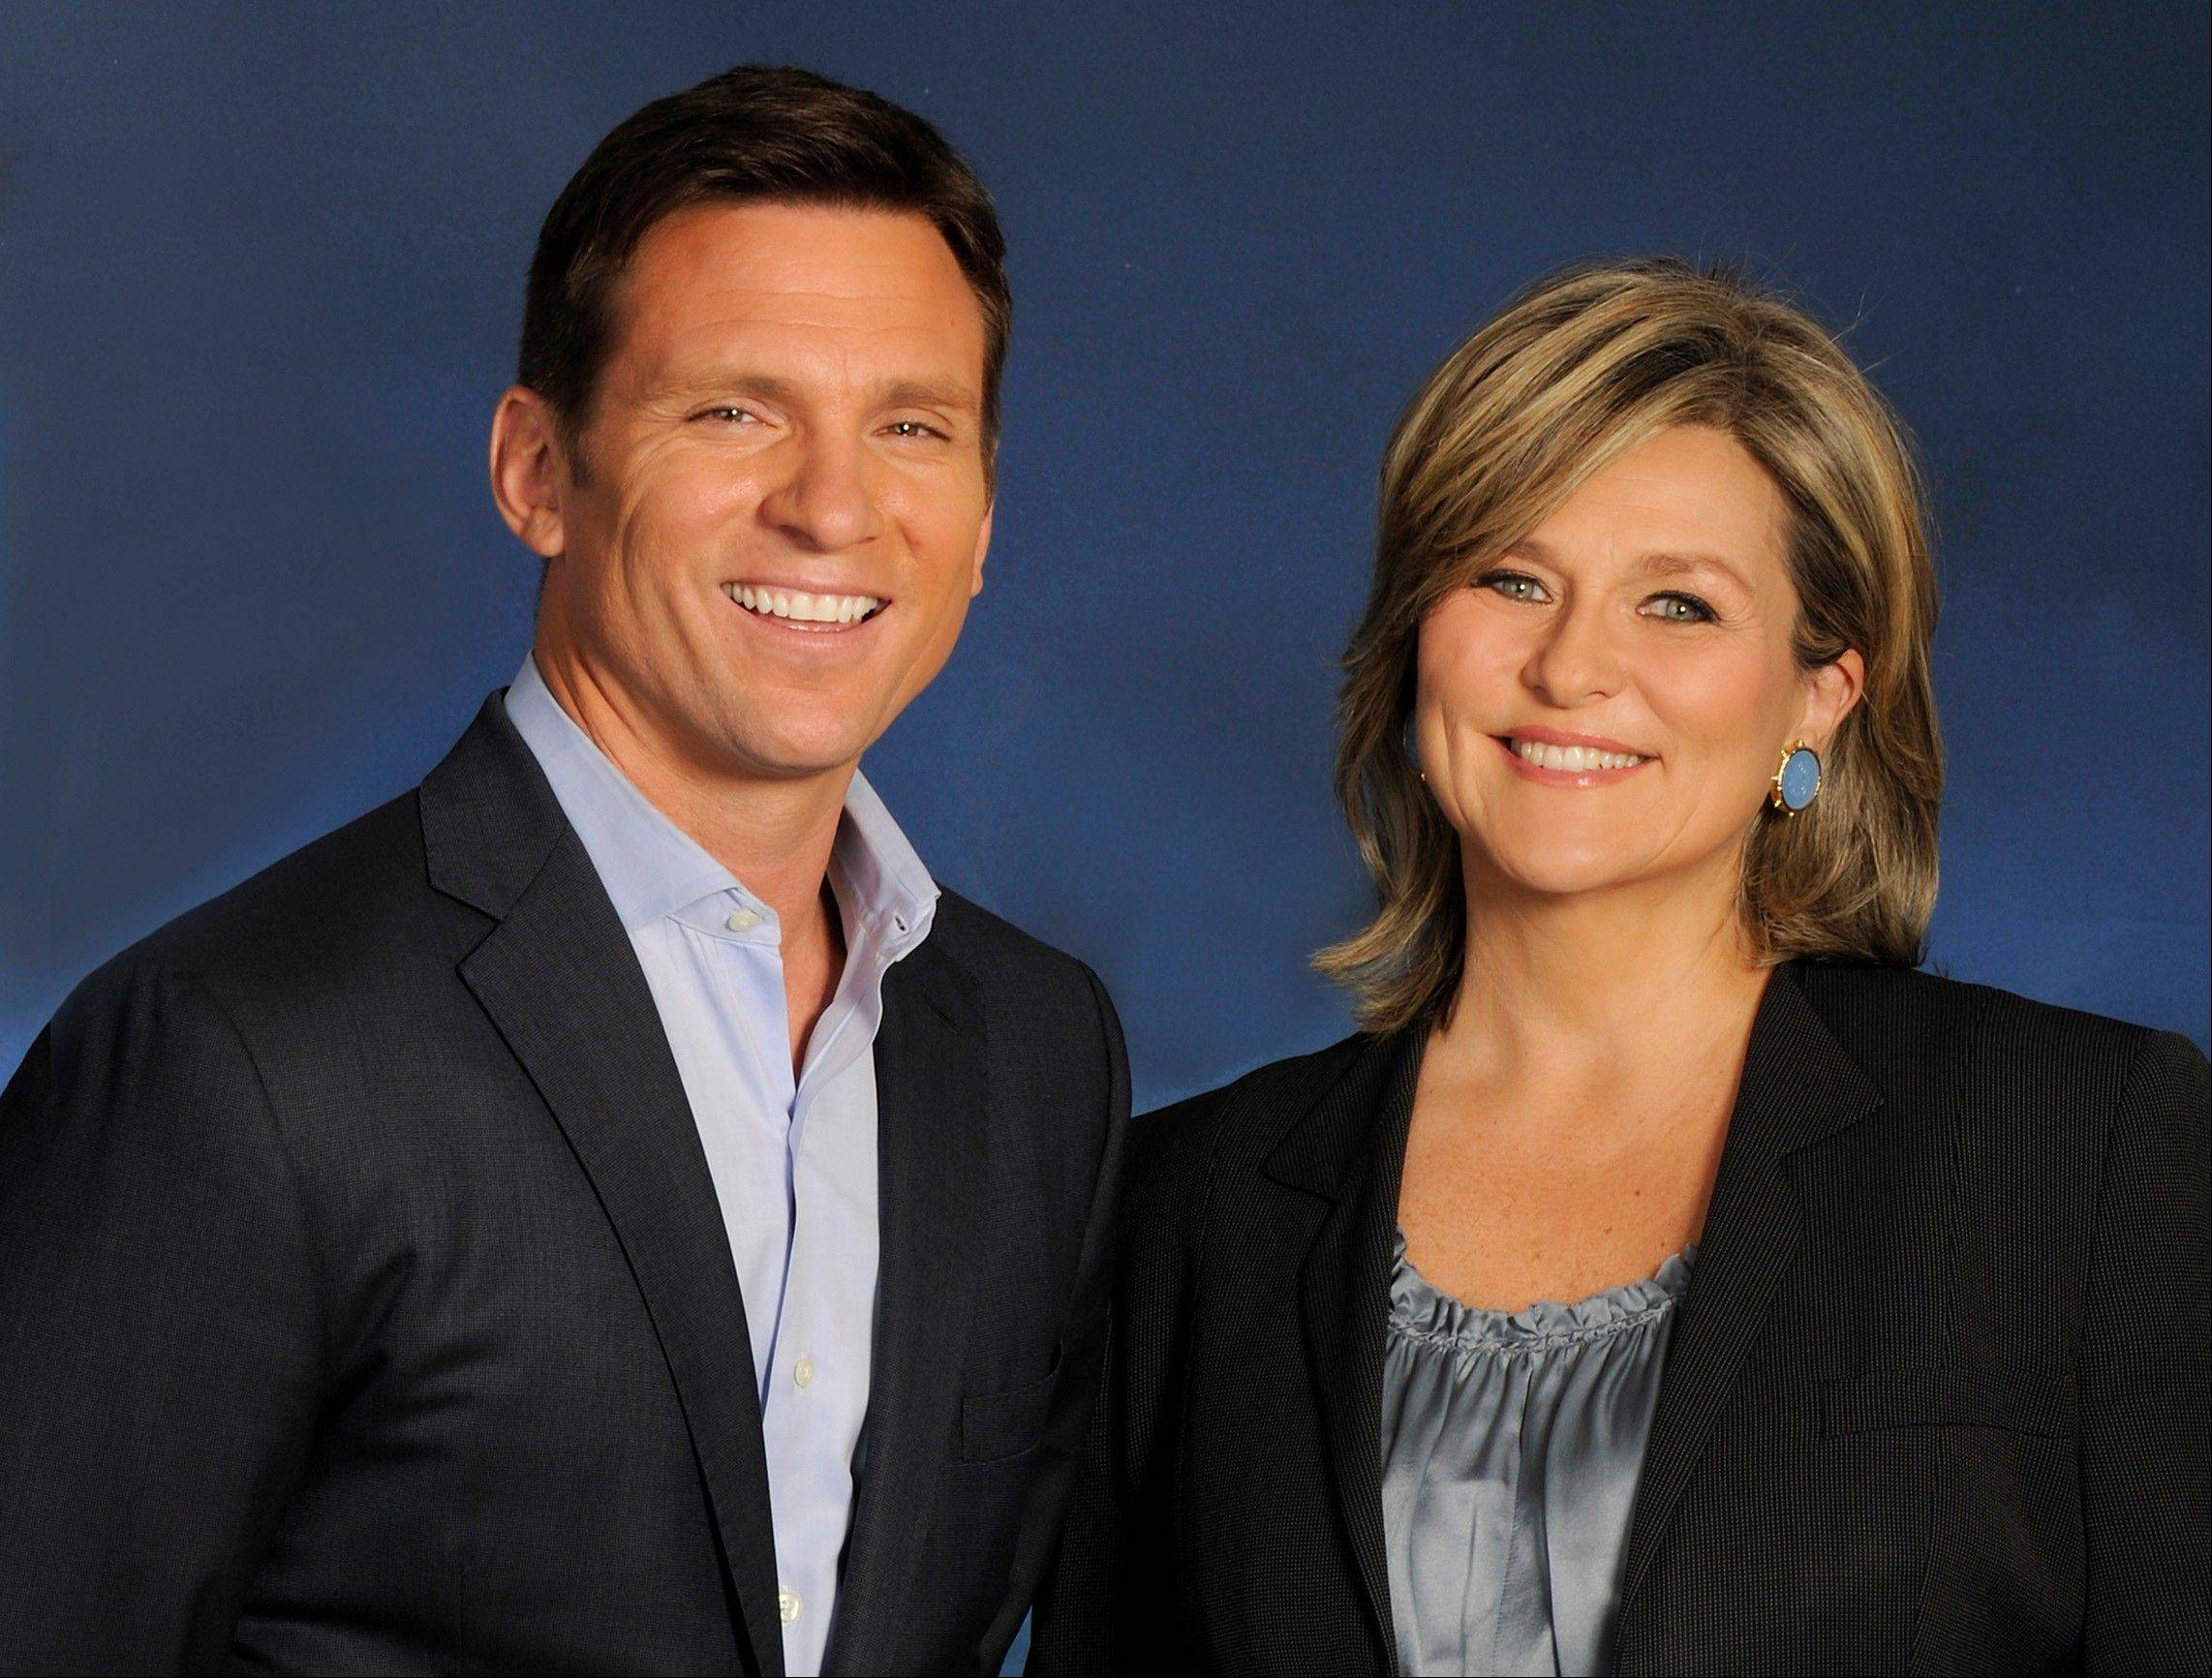 Bill Weir, left, and Cynthia McFadden, of the news magazine show �The Lookout.�